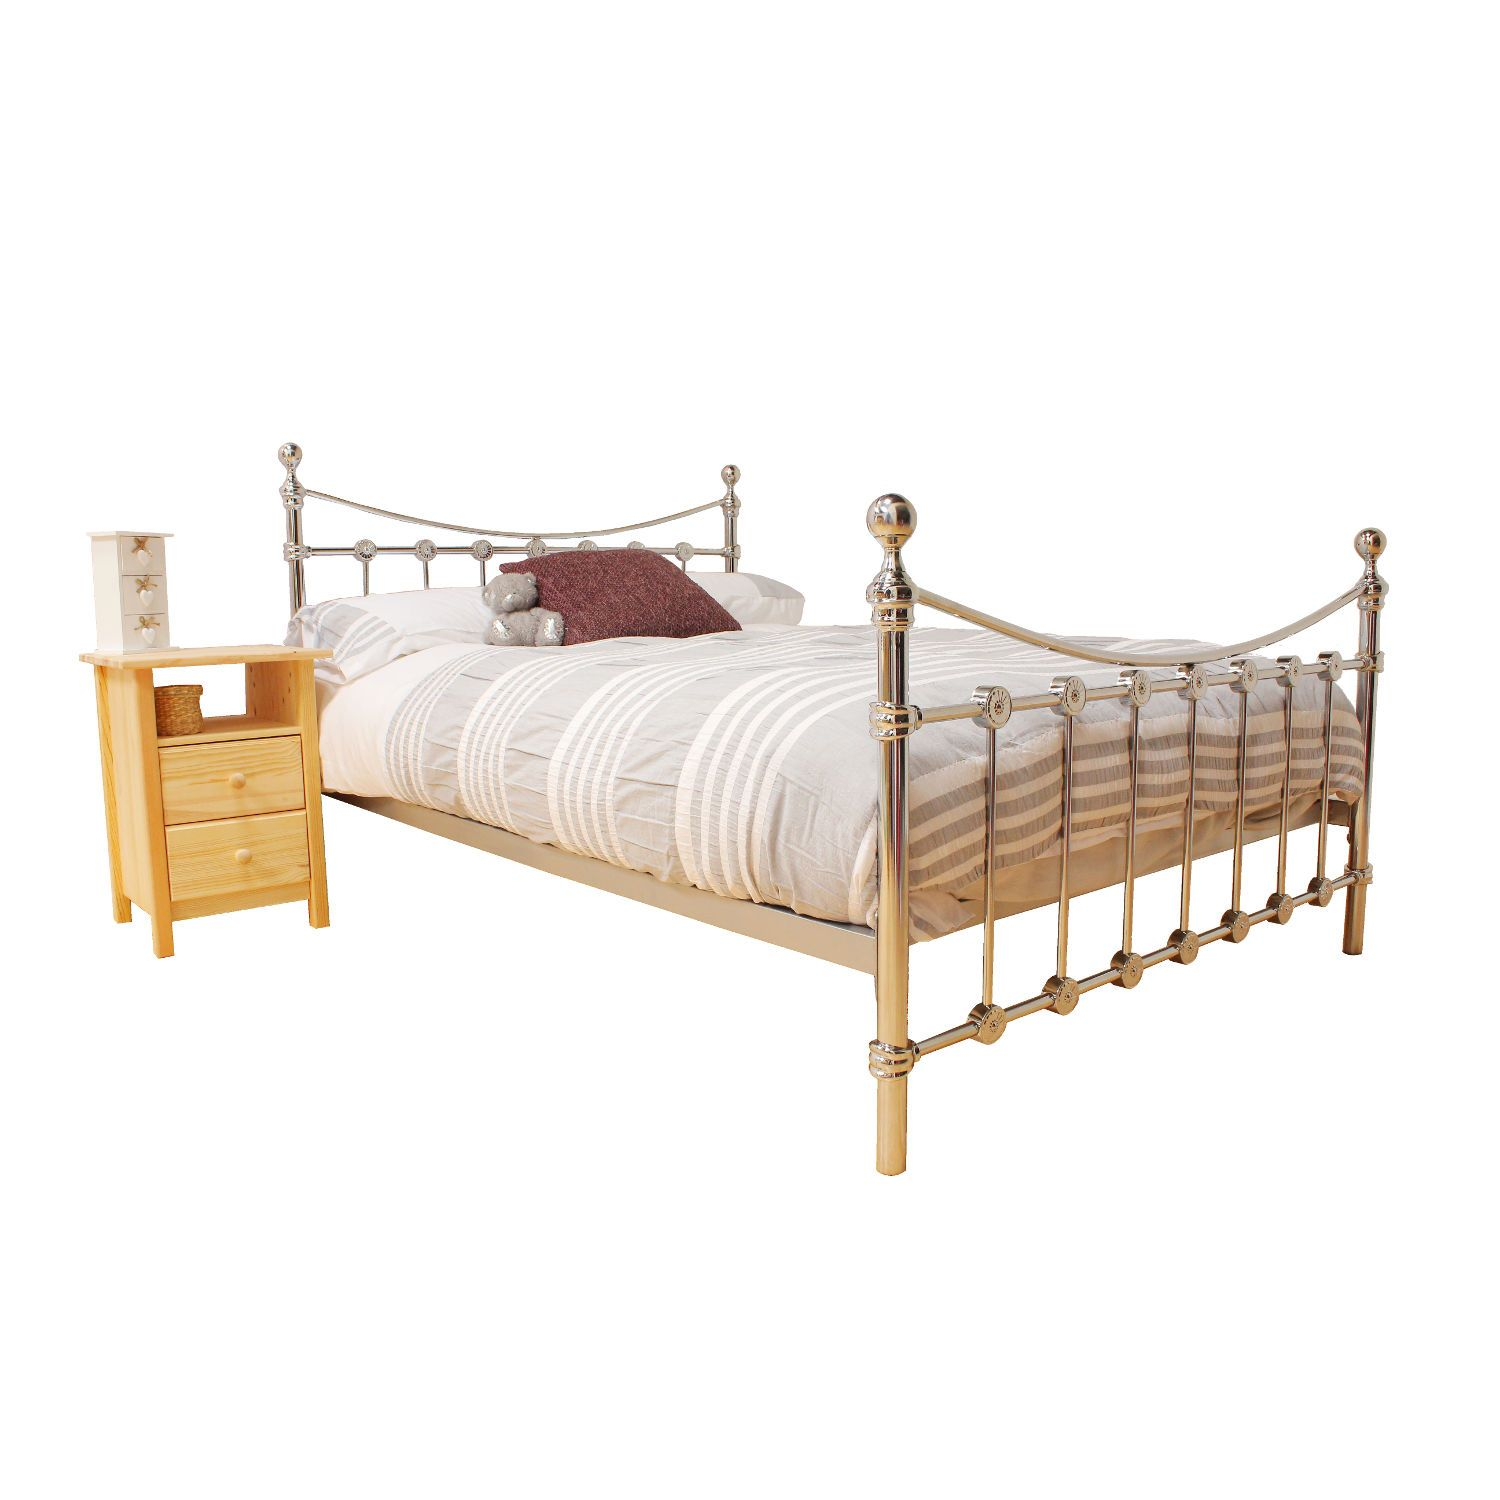 retro beds sleigh beds TV beds kids beds leather